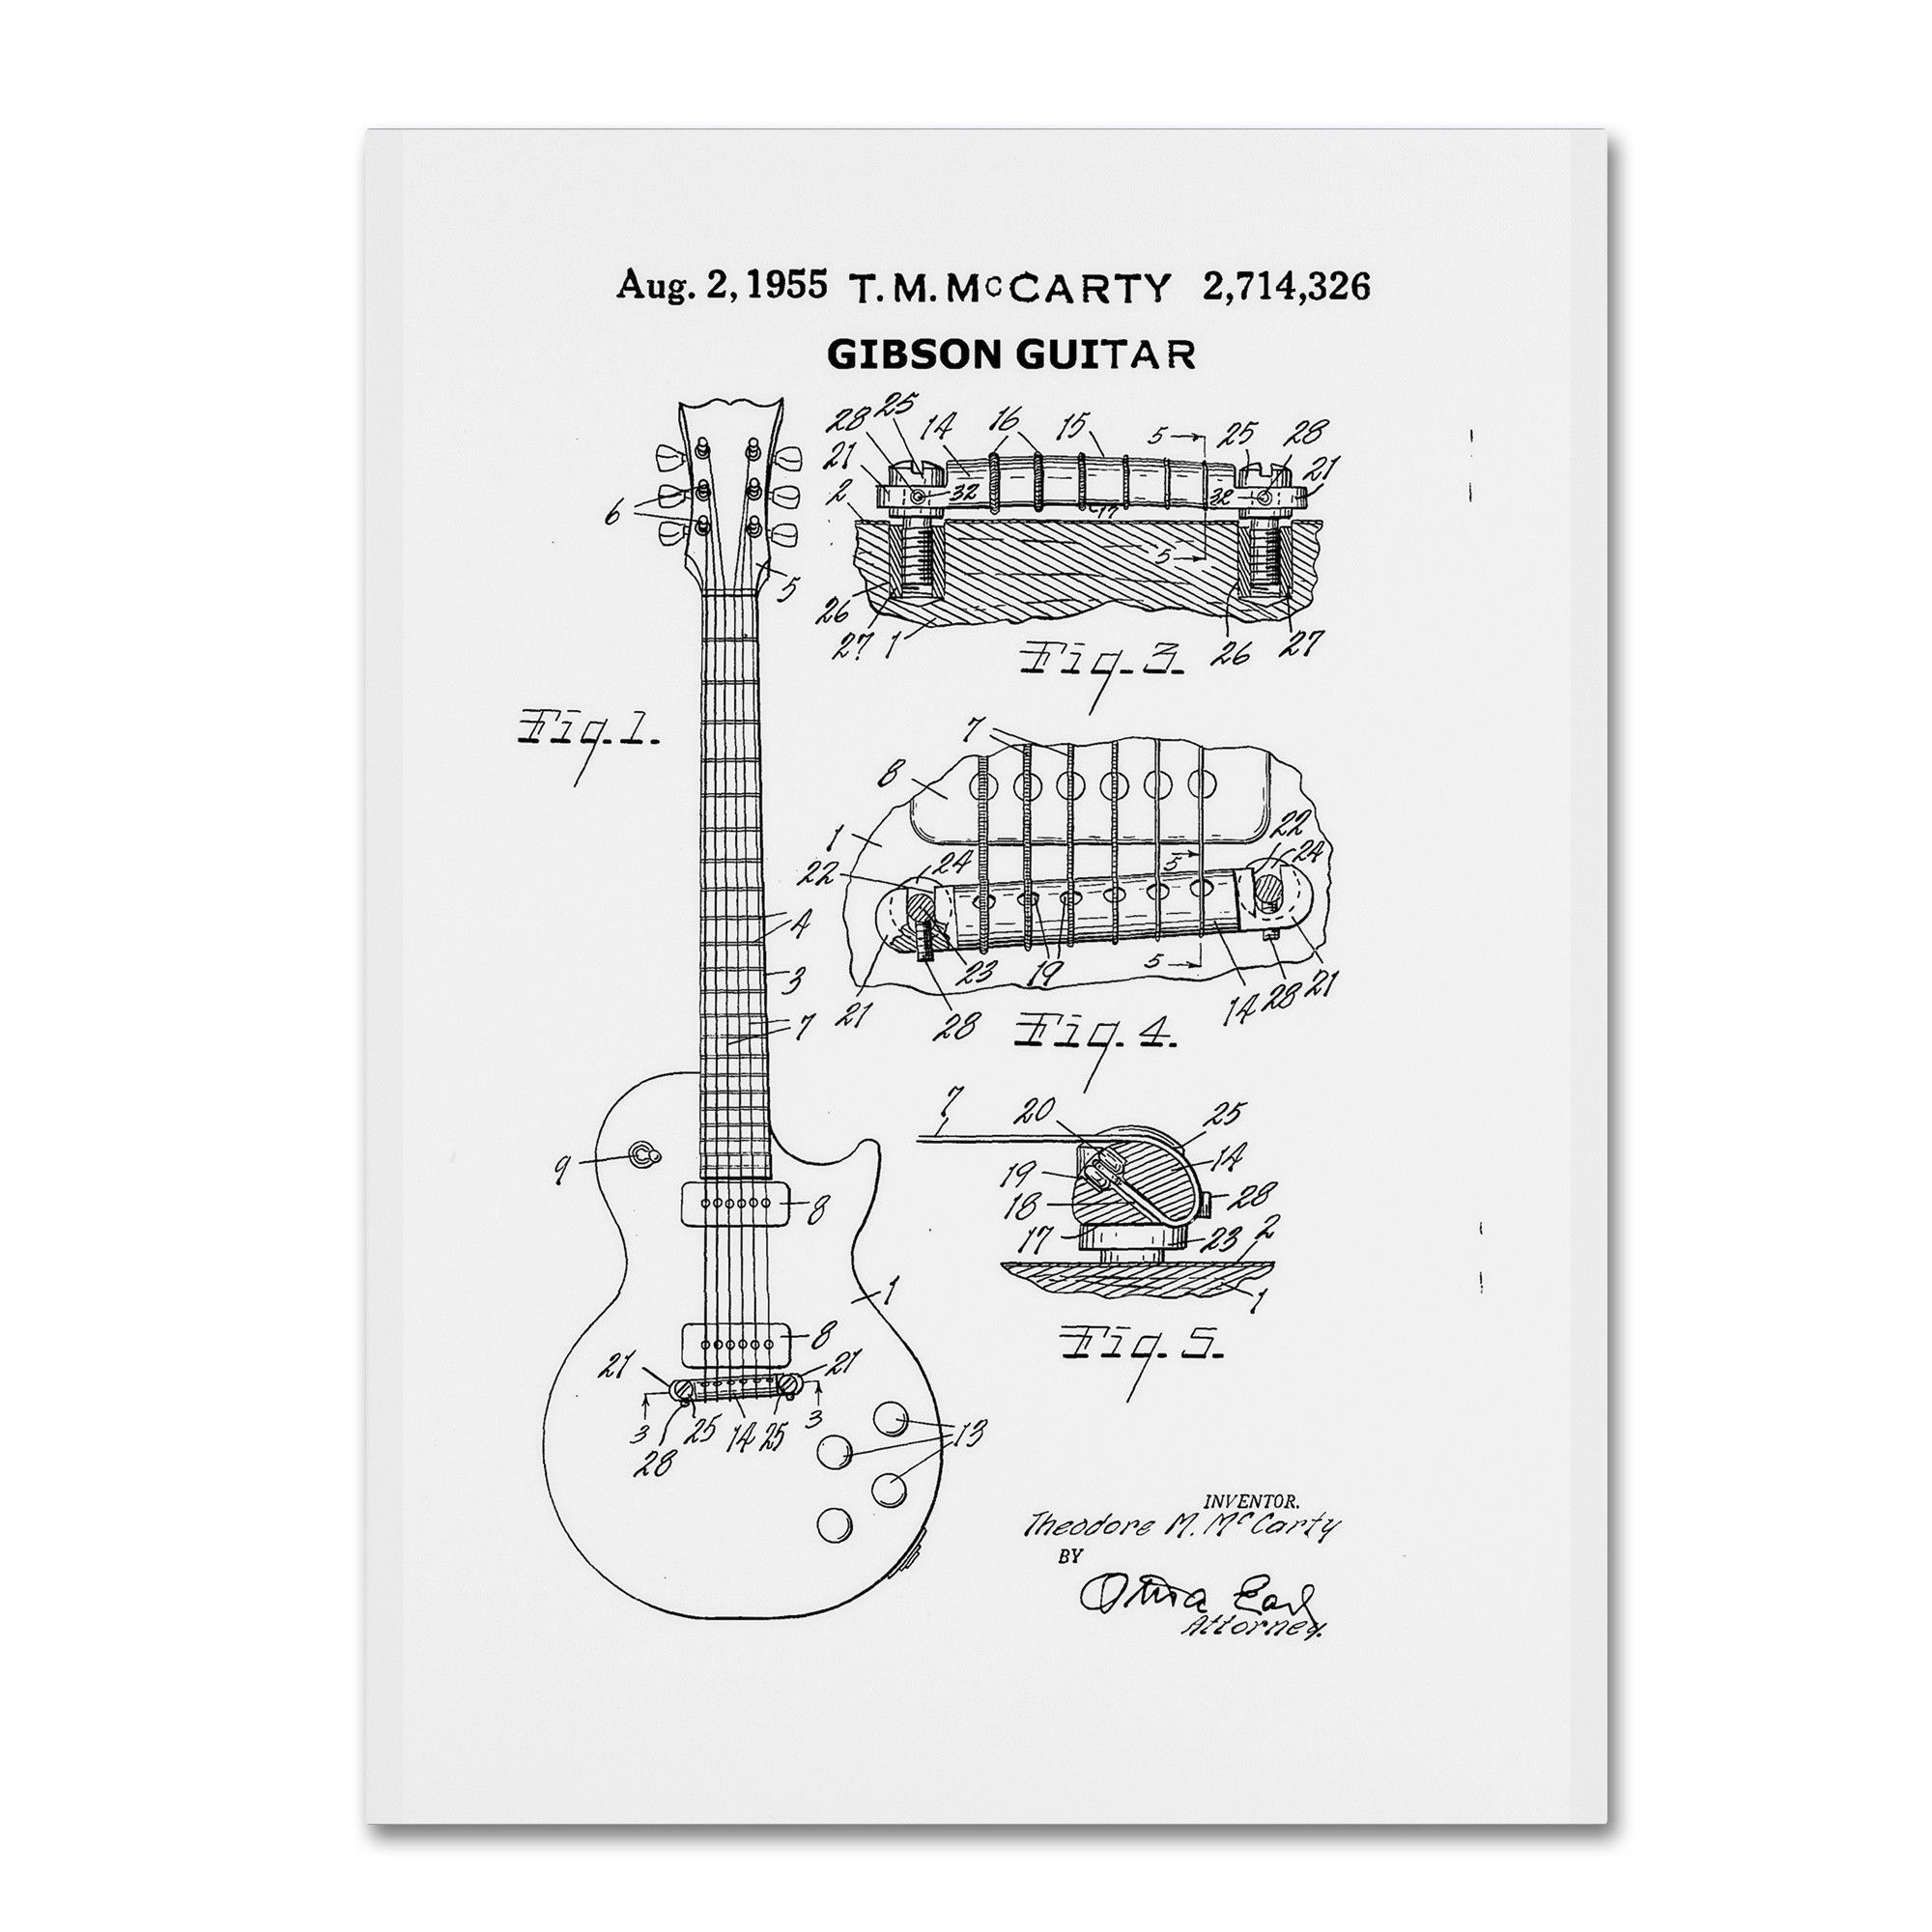 1955 Mccarty Gibson Guitar Patent by Claire Doherty Graphic Art on Wrapped Canvas in White